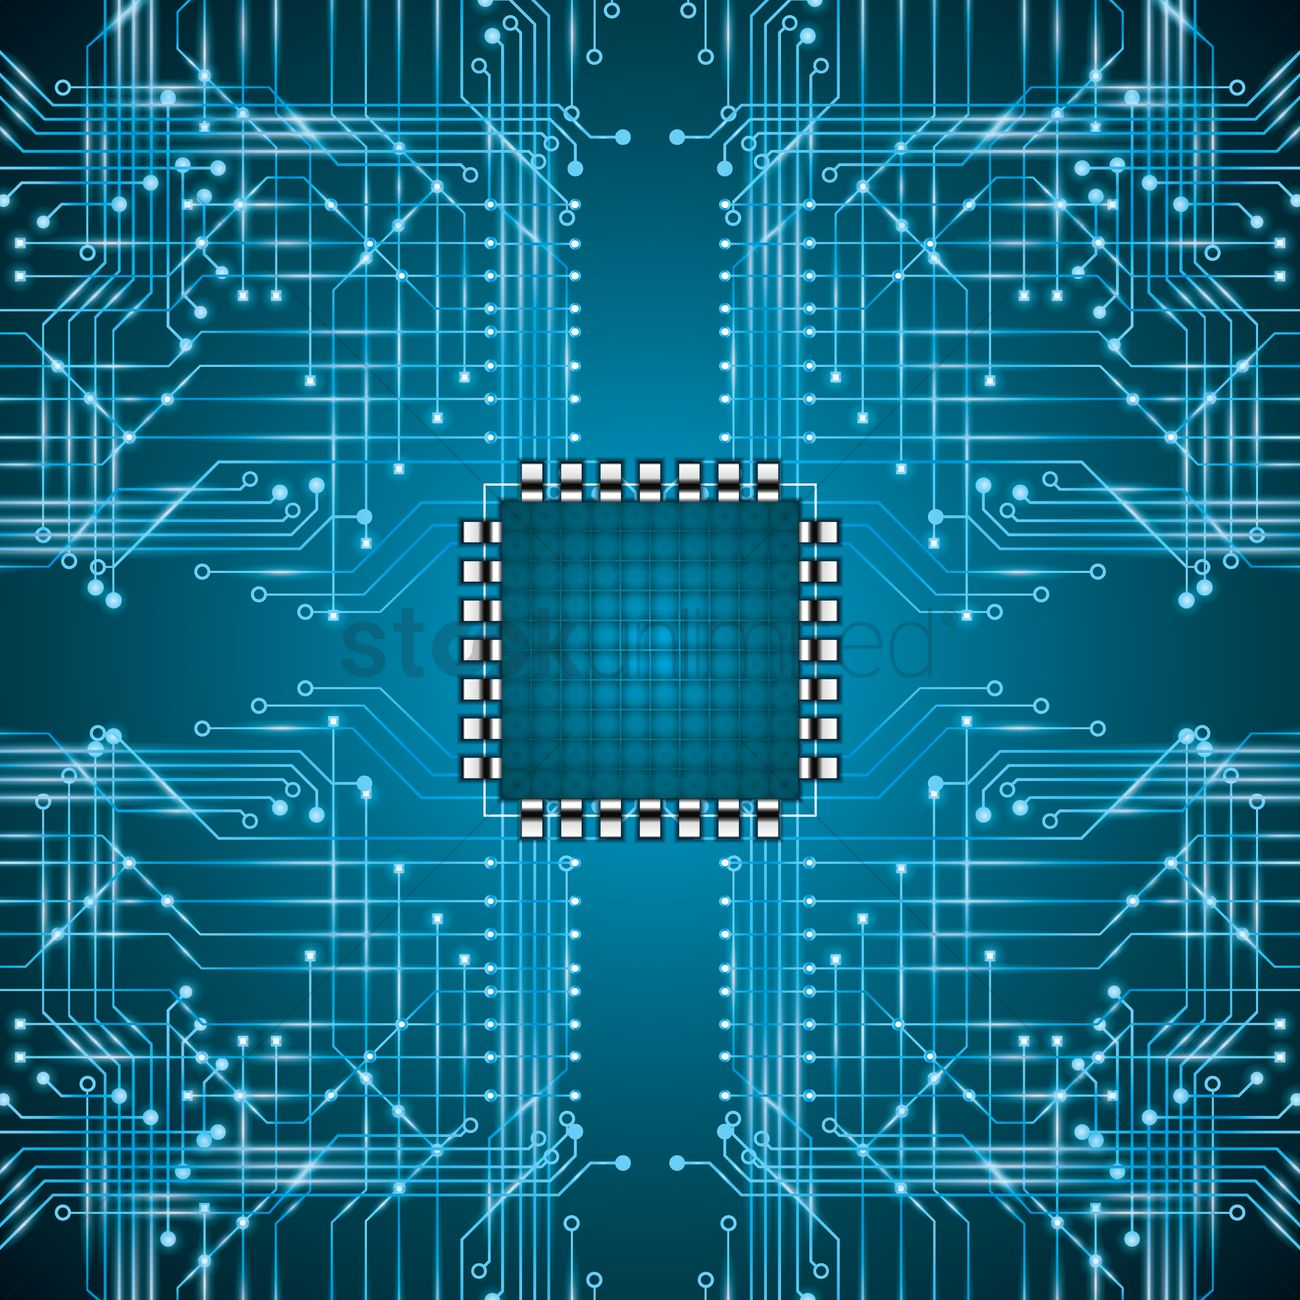 Microchip On Circuit Board Wallpaper Vector Image